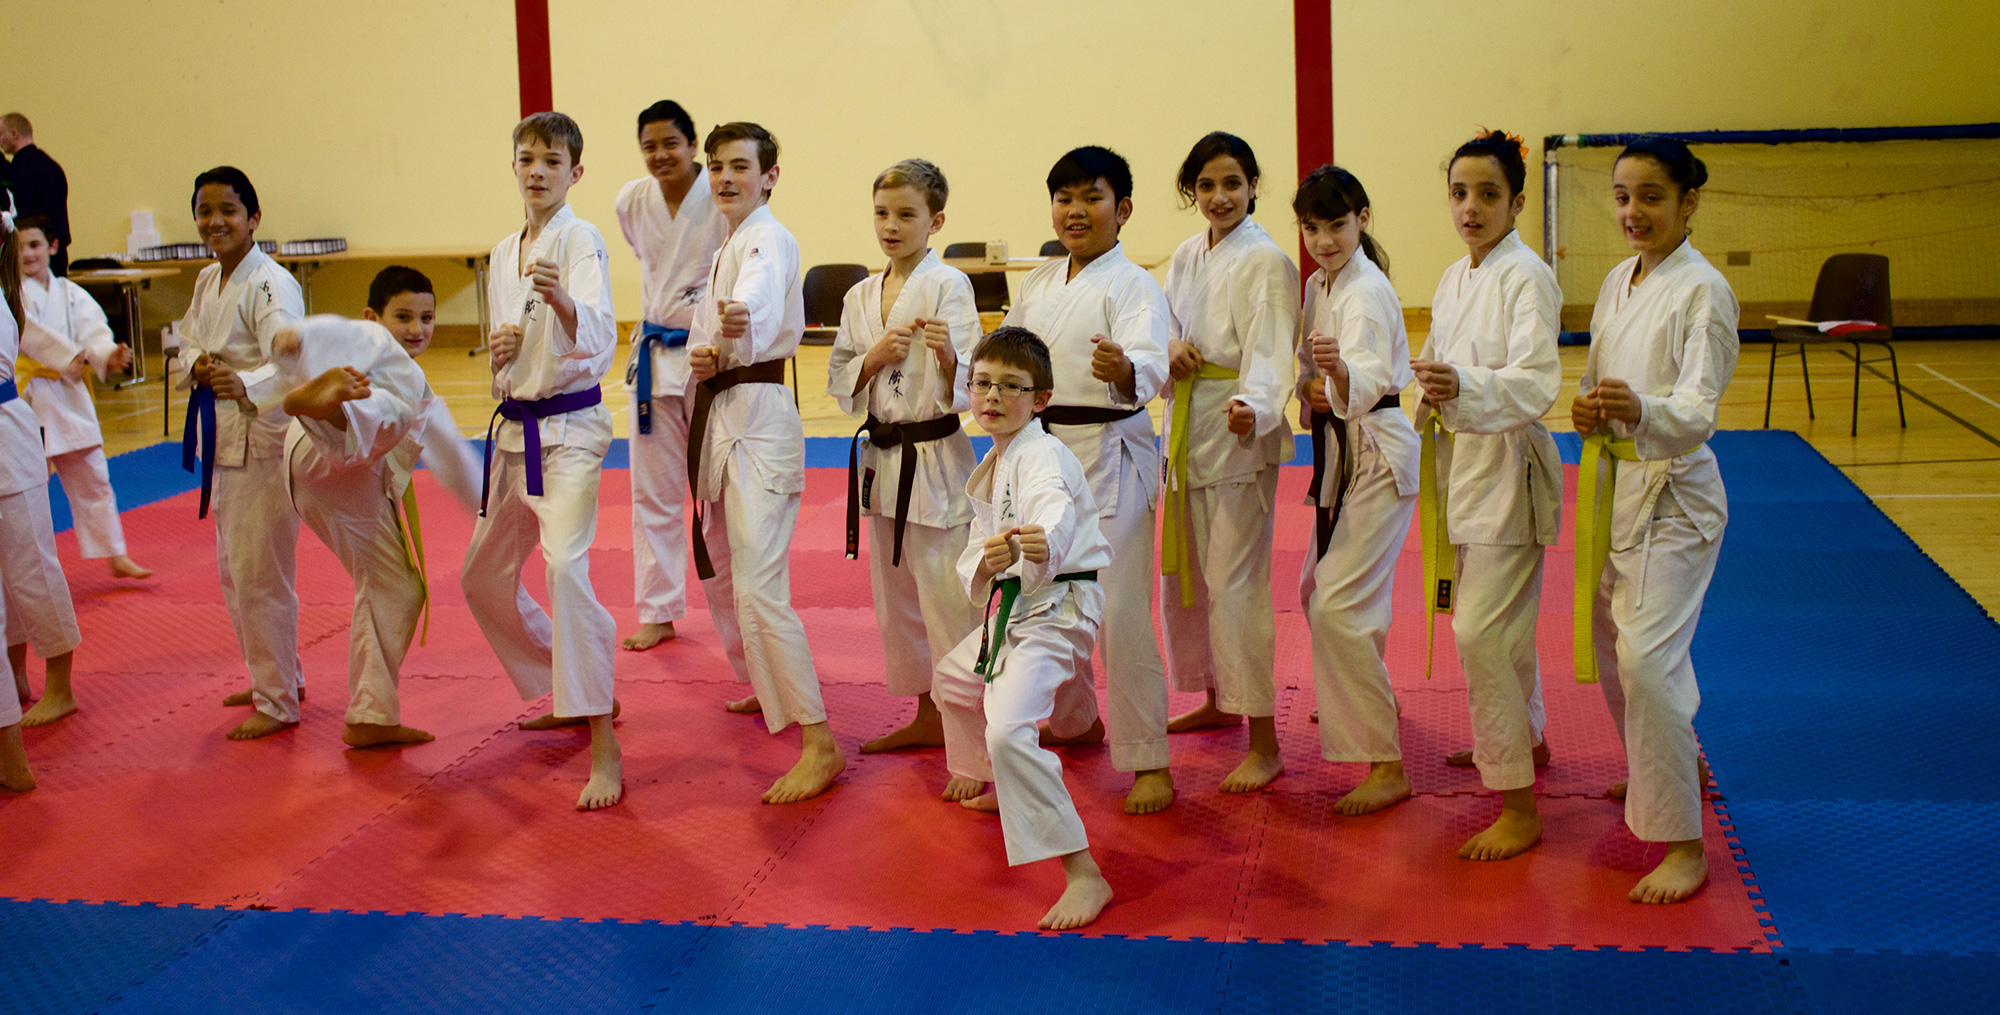 Members of Bushido Karate Club who competed at the SKIF Ireland National Championships